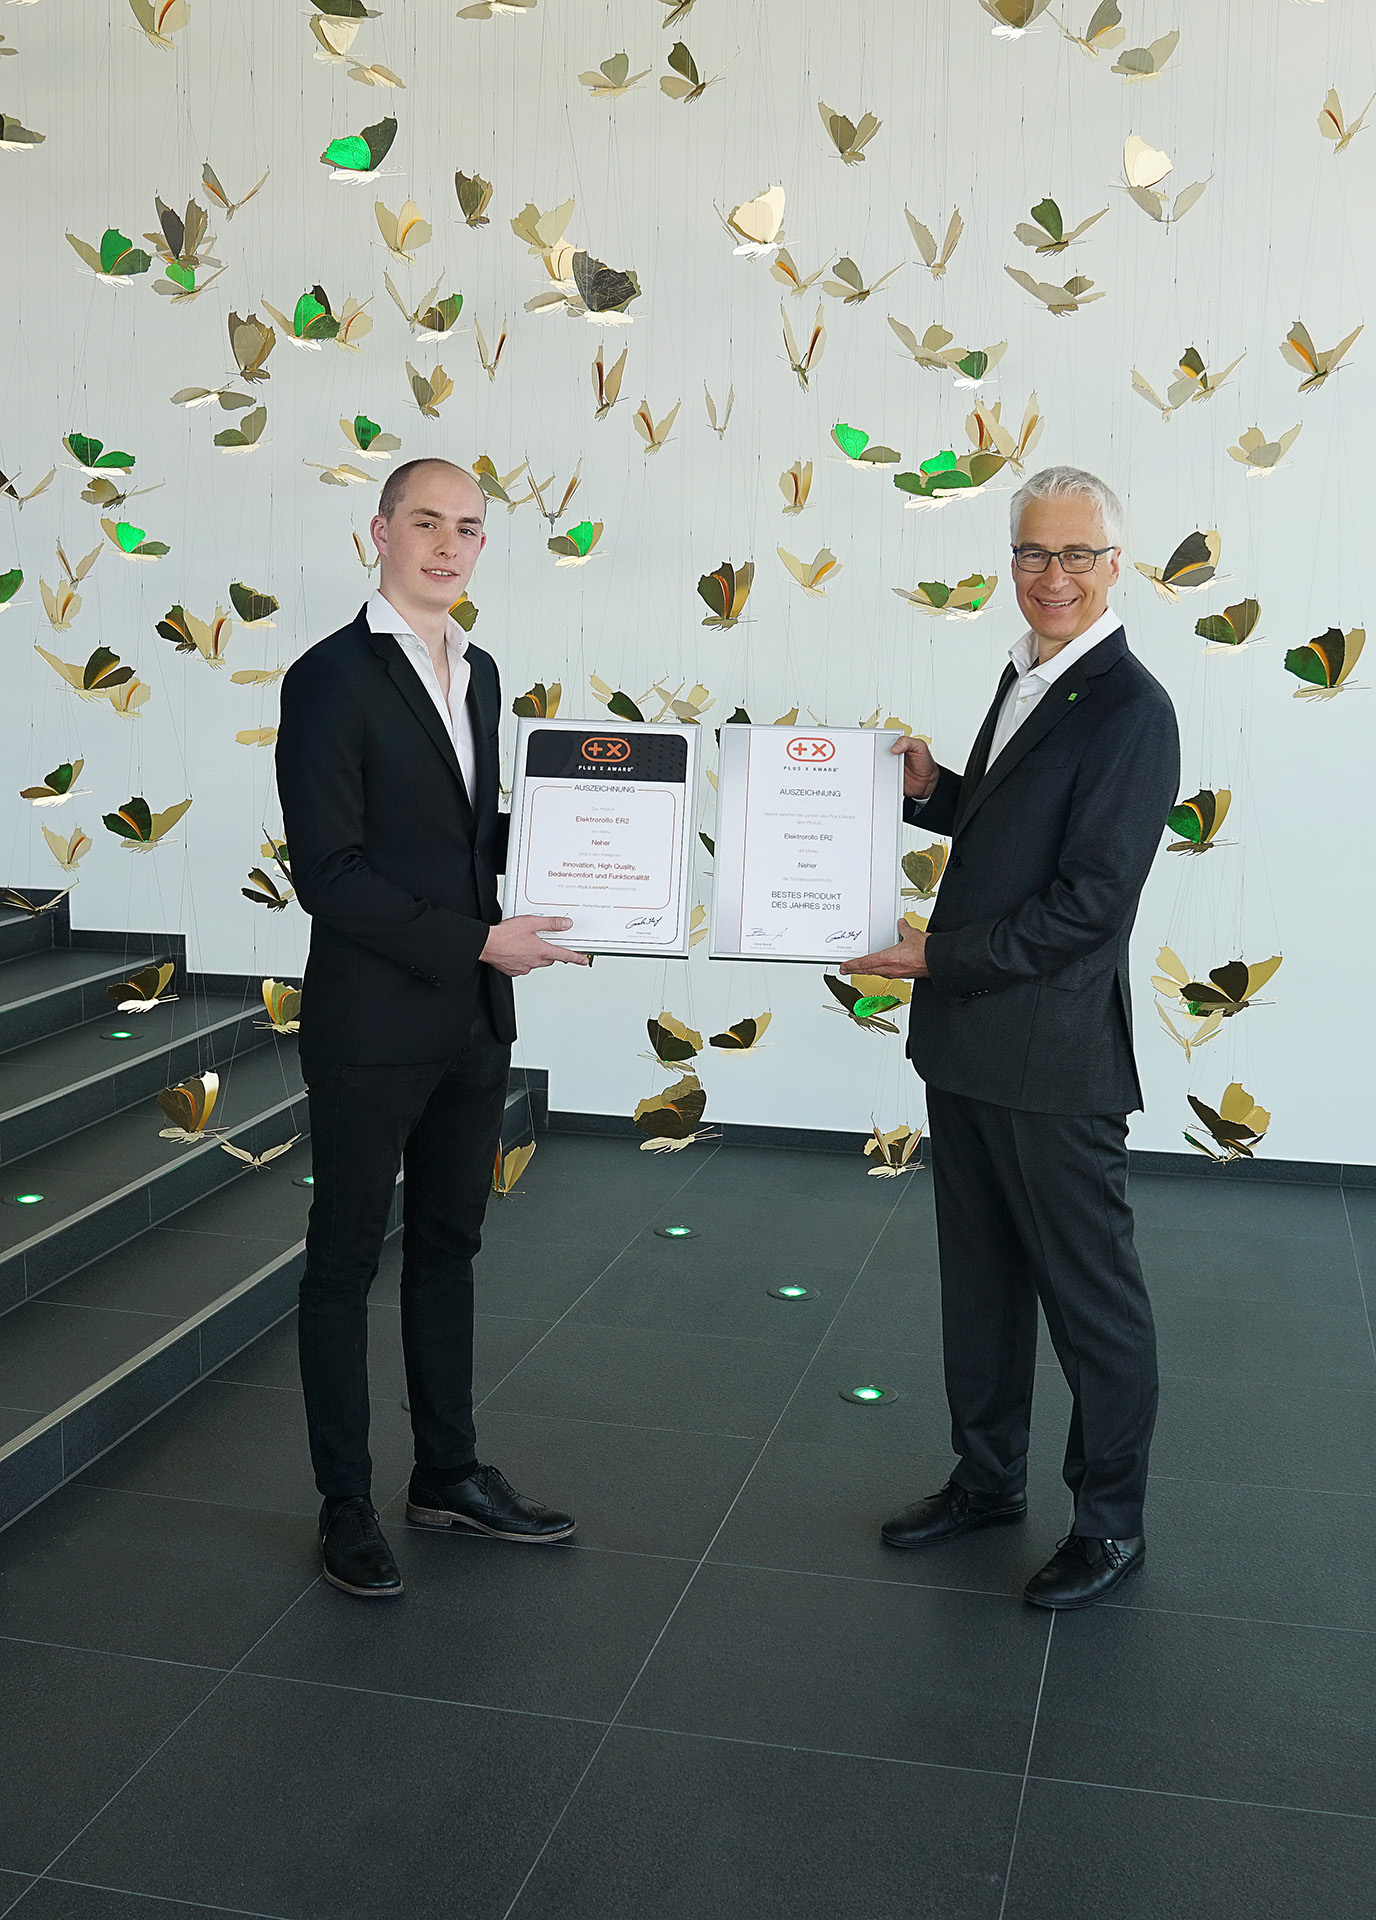 Neher receives Plus Xaward 2018 certificate presentation